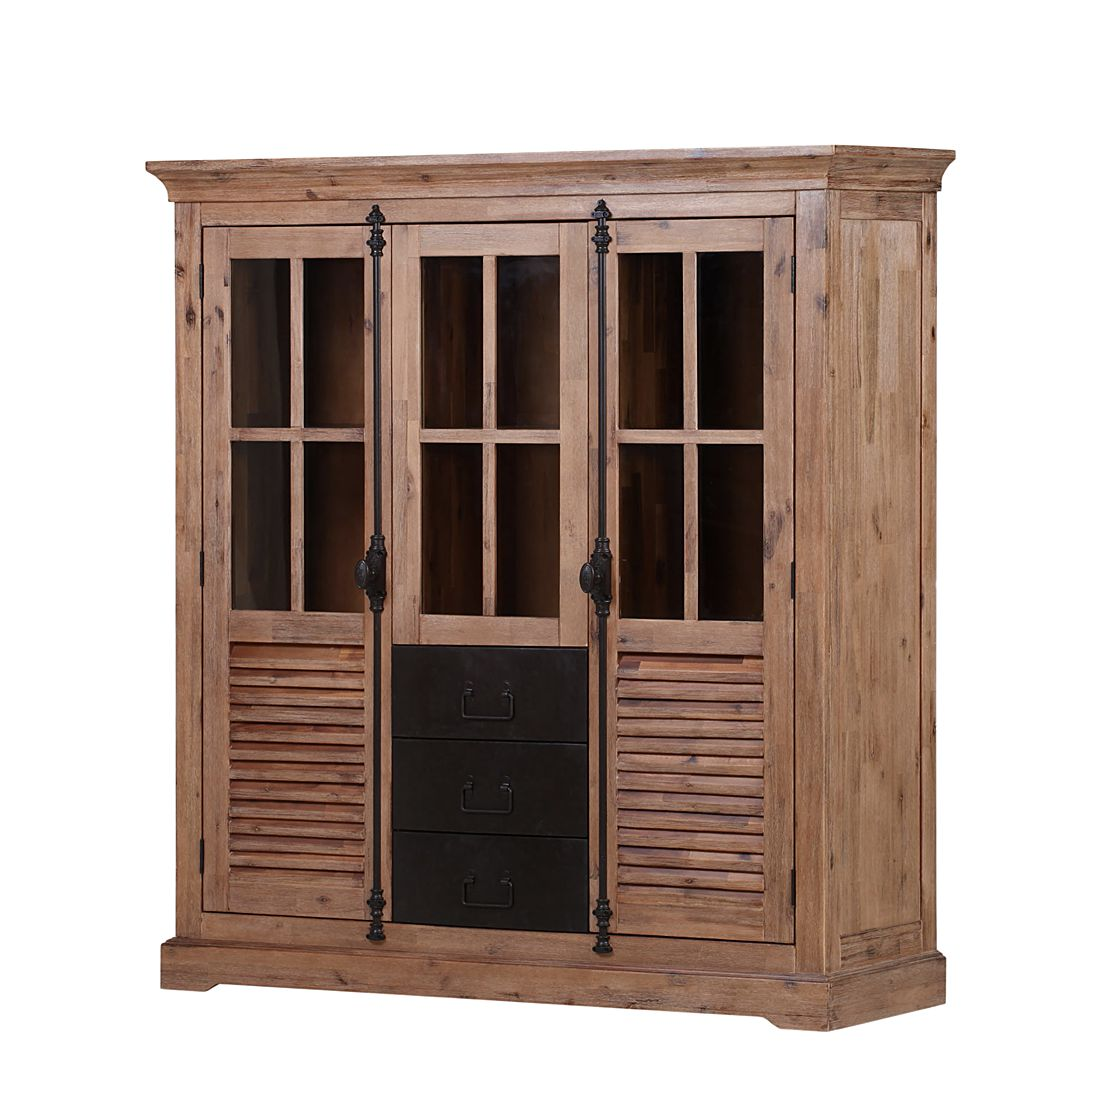 armoire vitrine le havre i acacia massif ridgevalley. Black Bedroom Furniture Sets. Home Design Ideas